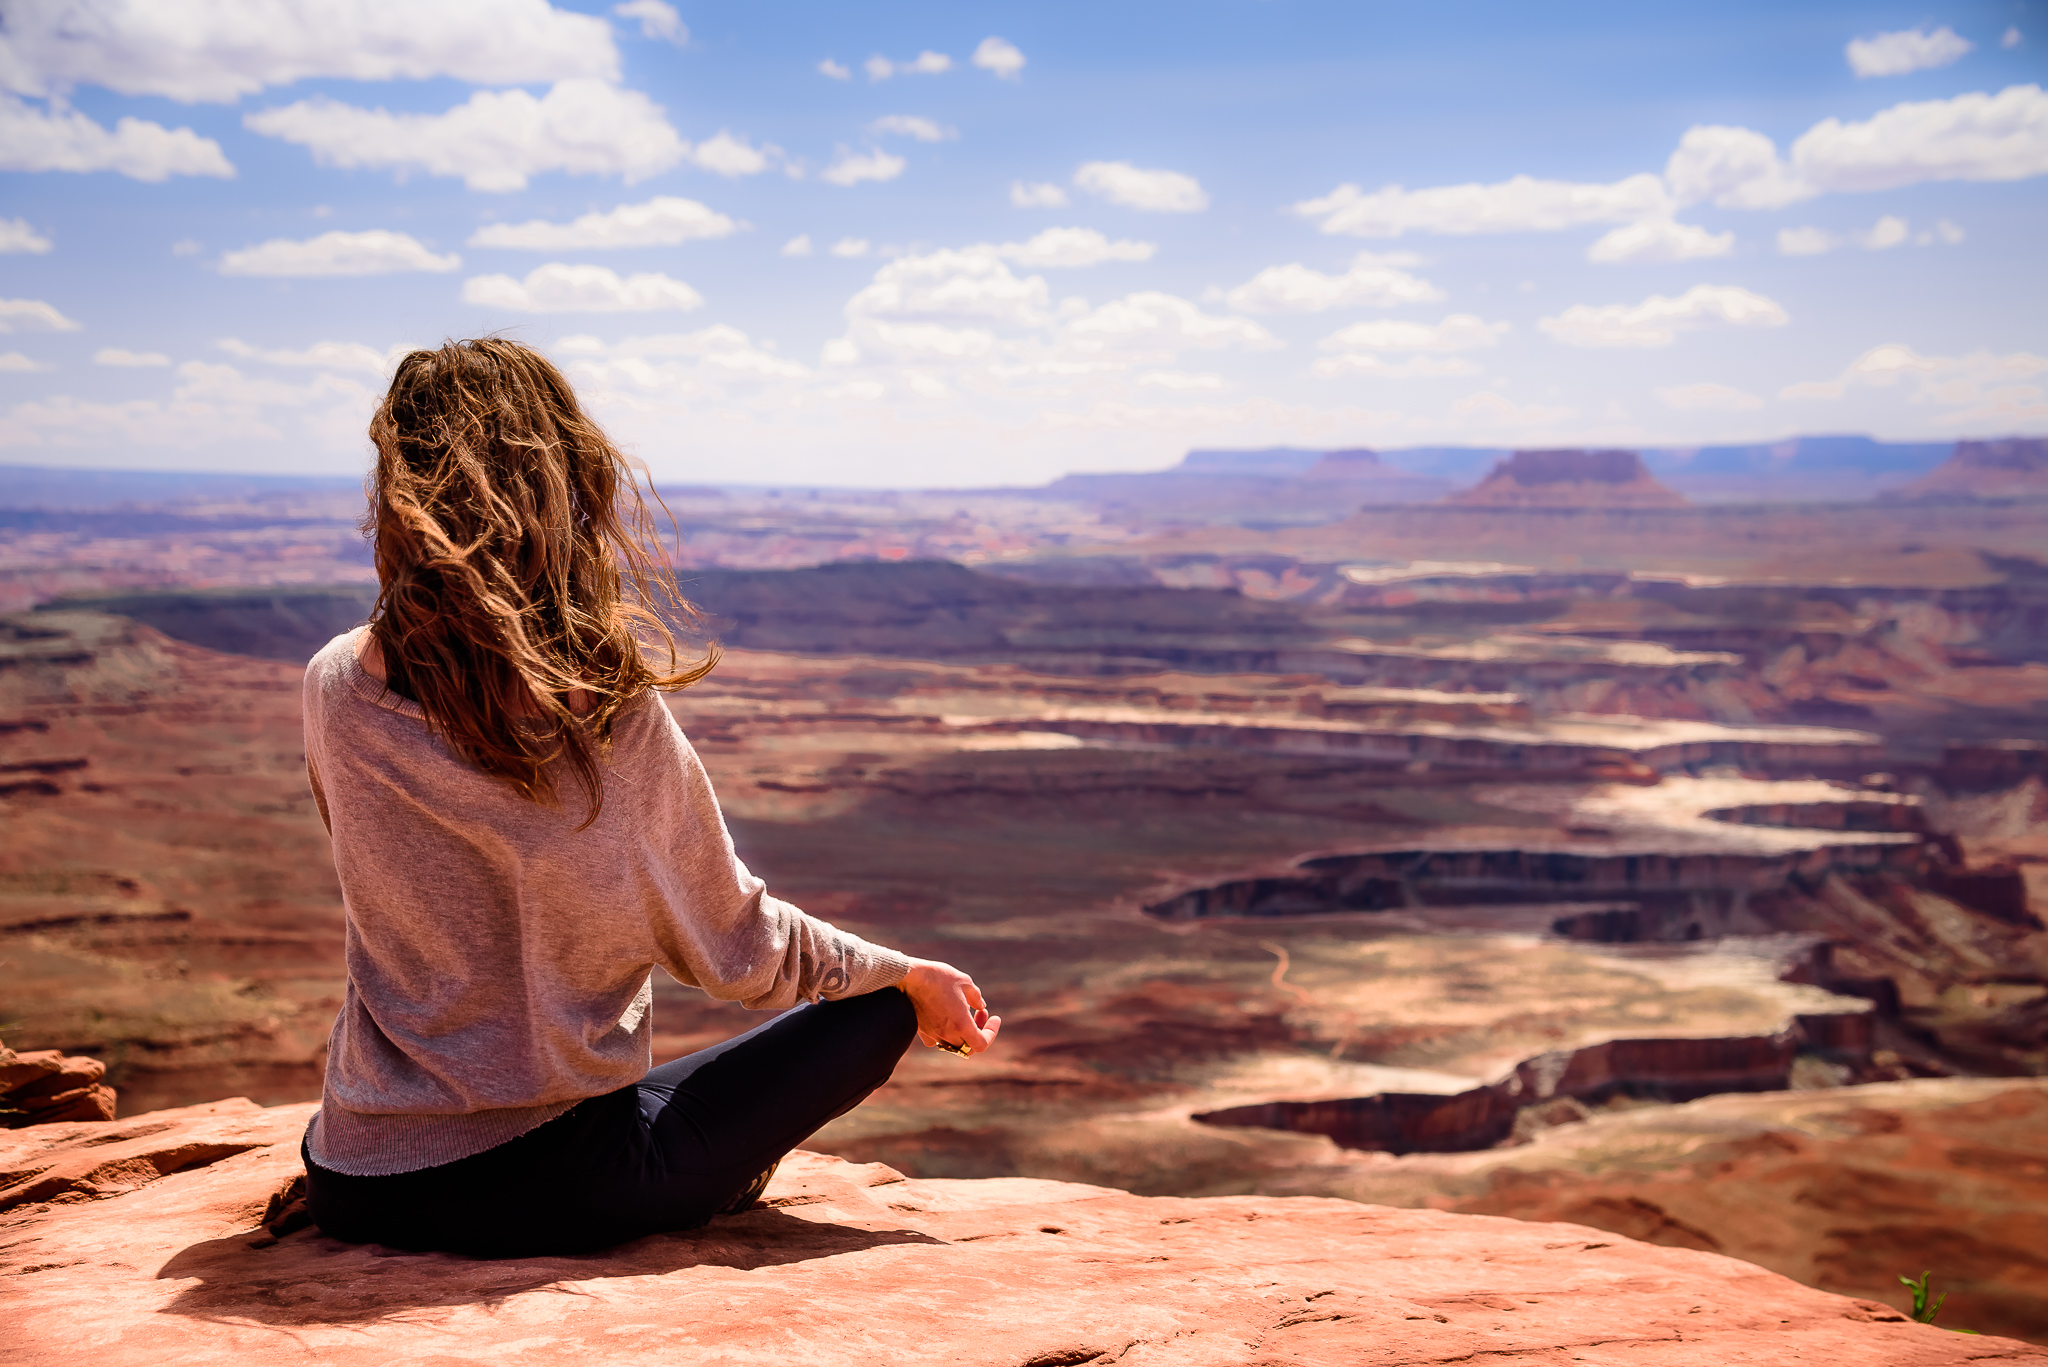 Much needed mid-cruise meditation. Canyonlands National Park, UT.